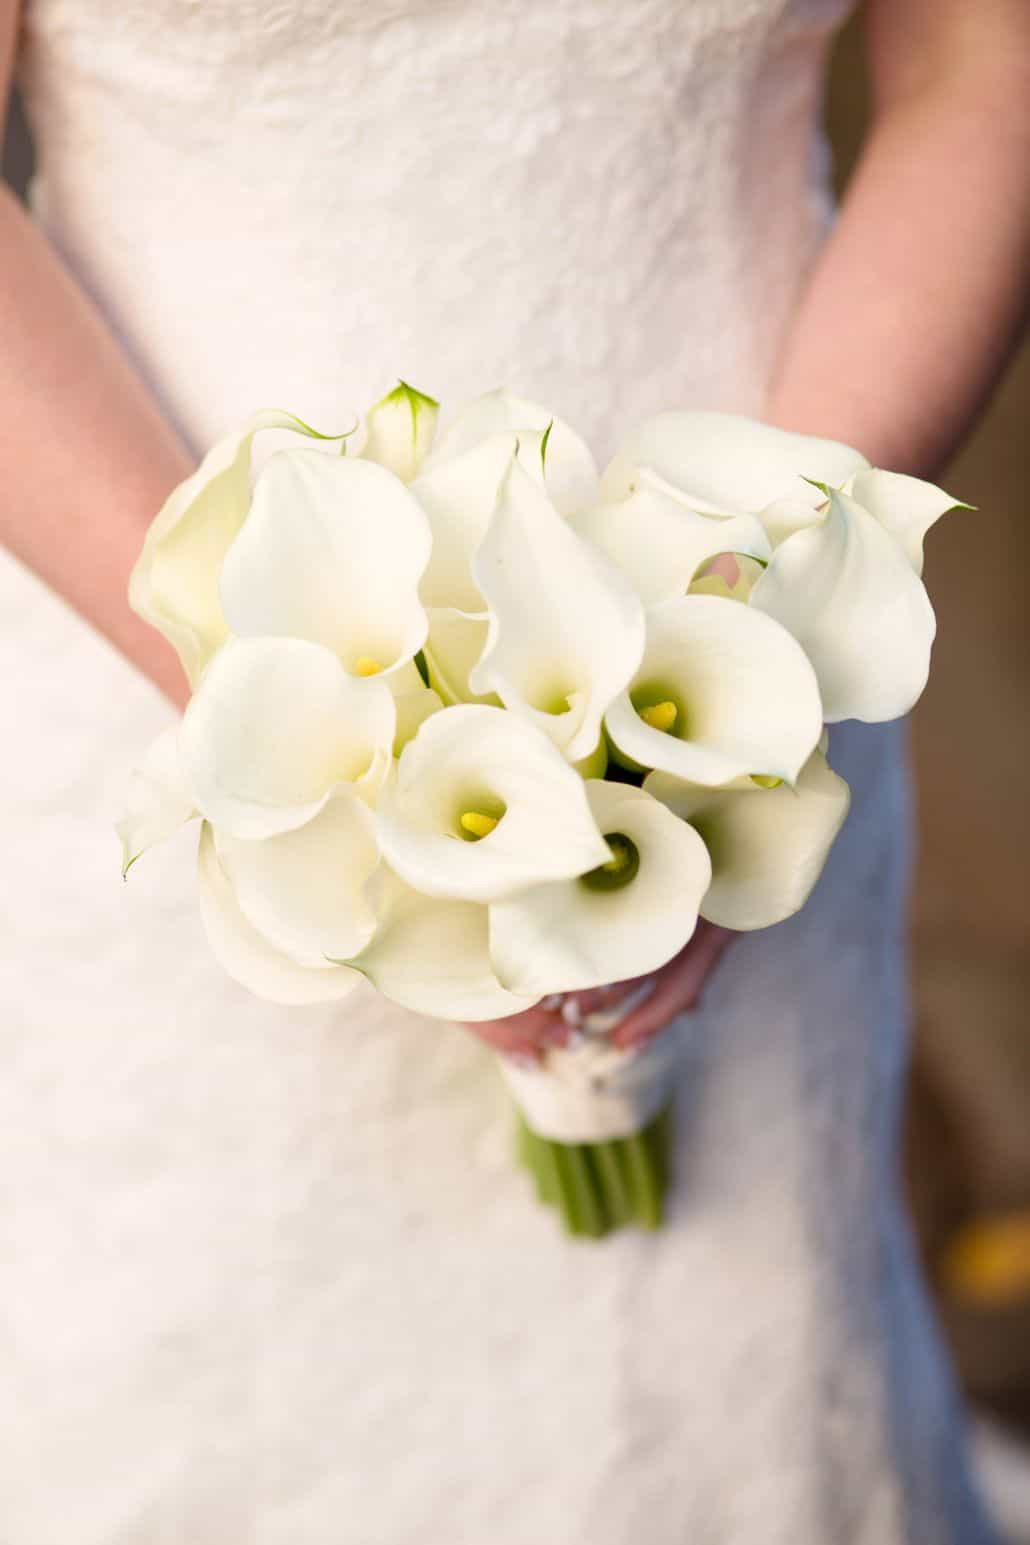 White Calla Lily Bridal Bouquet Held By Bride In Lace Gown